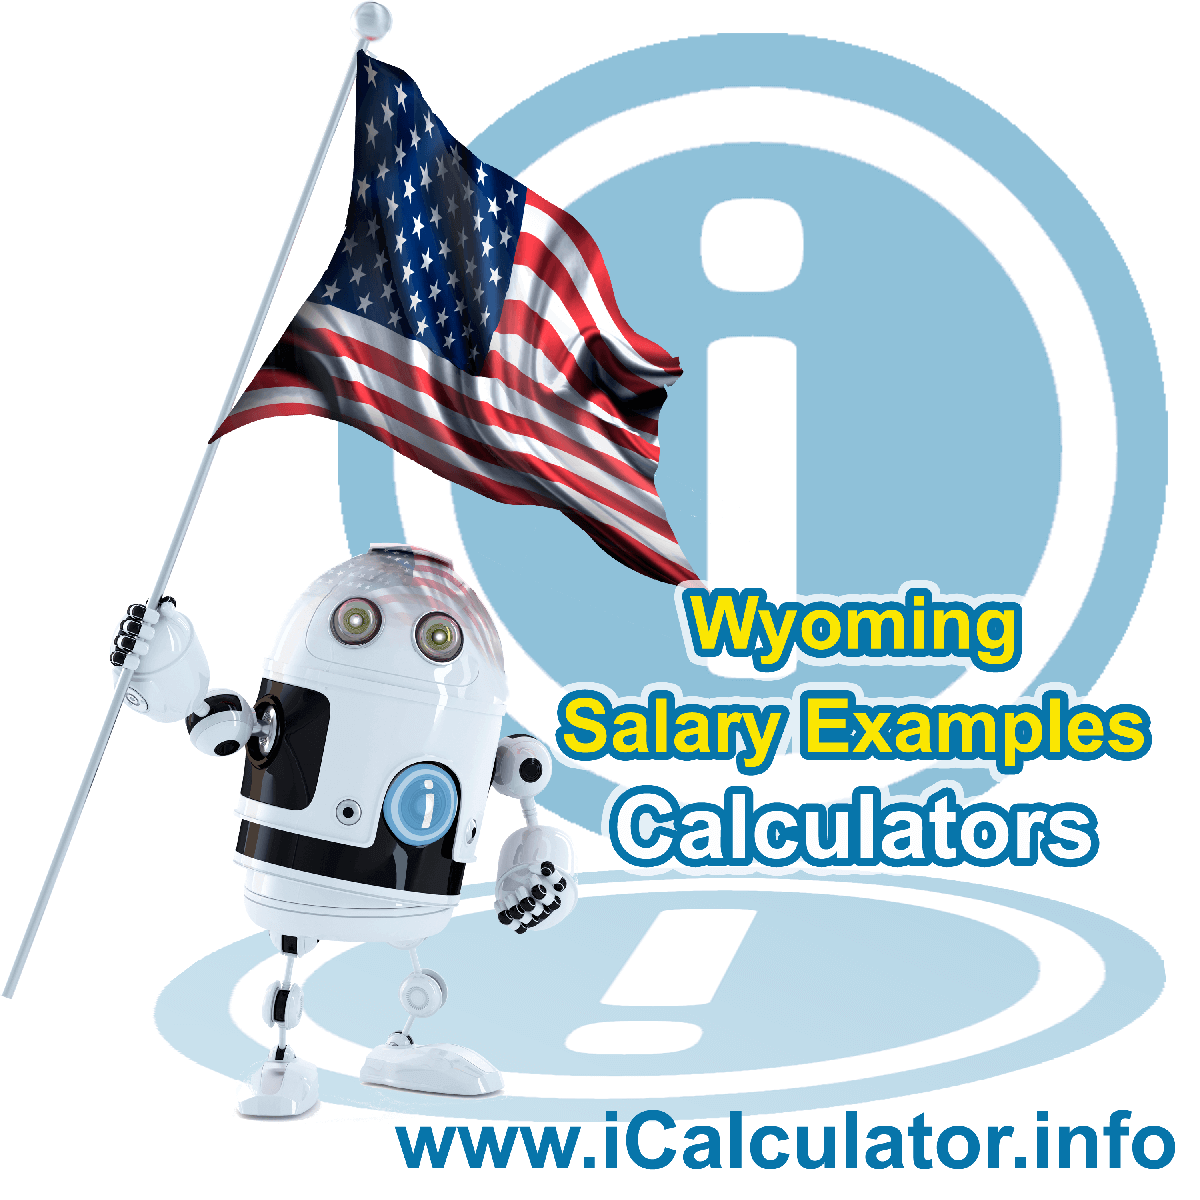 Wyoming Salary Example for $10,000.00 in 2020 | iCalculator | $10,000.00 salary example for employee and employer paying Wyoming State tincome taxes. Detailed salary after tax calculation including Wyoming State Tax, Federal State Tax, Medicare Deductions, Social Security, Capital Gains and other income tax and salary deductions complete with supporting Wyoming state tax tables